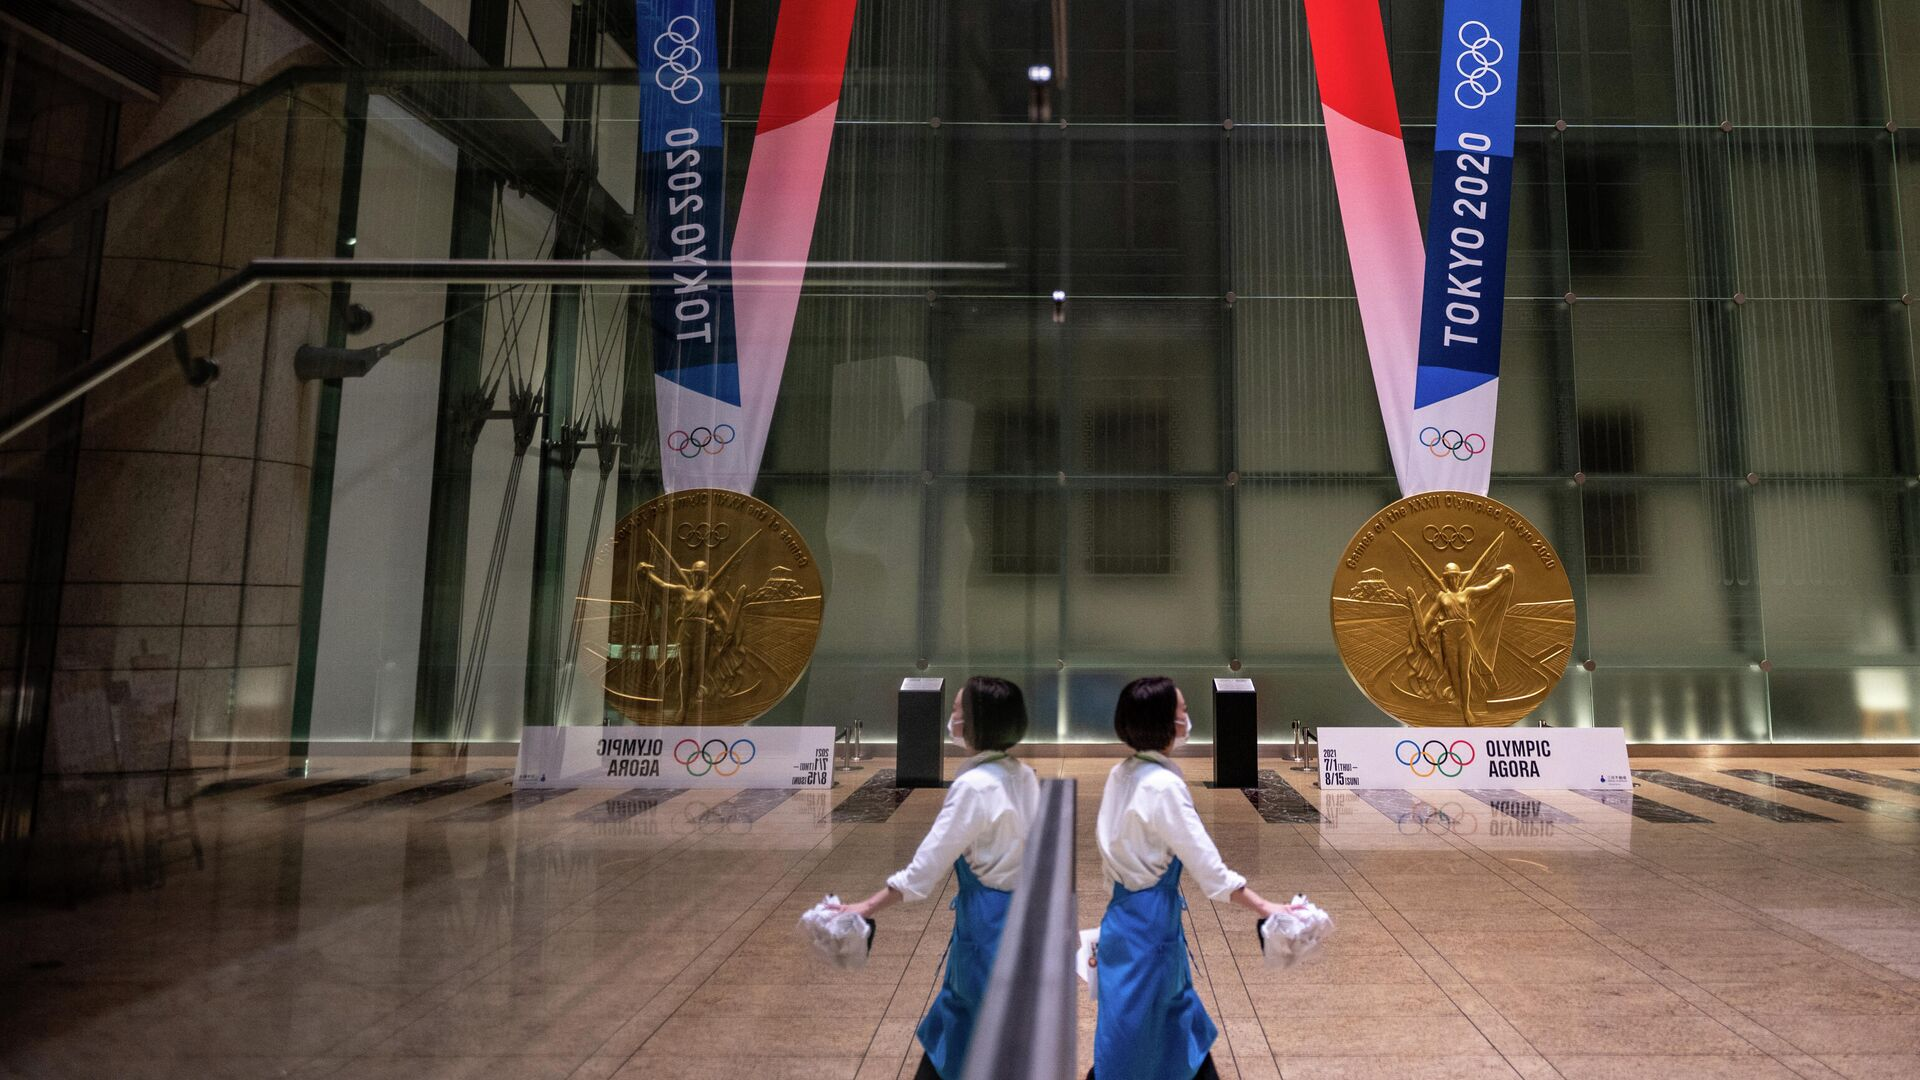 A woman walks near a large-scale reproduction of the Tokyo 2020 Olympic Games gold medal as part of the Olympic Agora event at Mitsui Tower in Tokyo on July 14, 2021. (Photo by Philip FONG / AFP) - РИА Новости, 1920, 23.07.2021